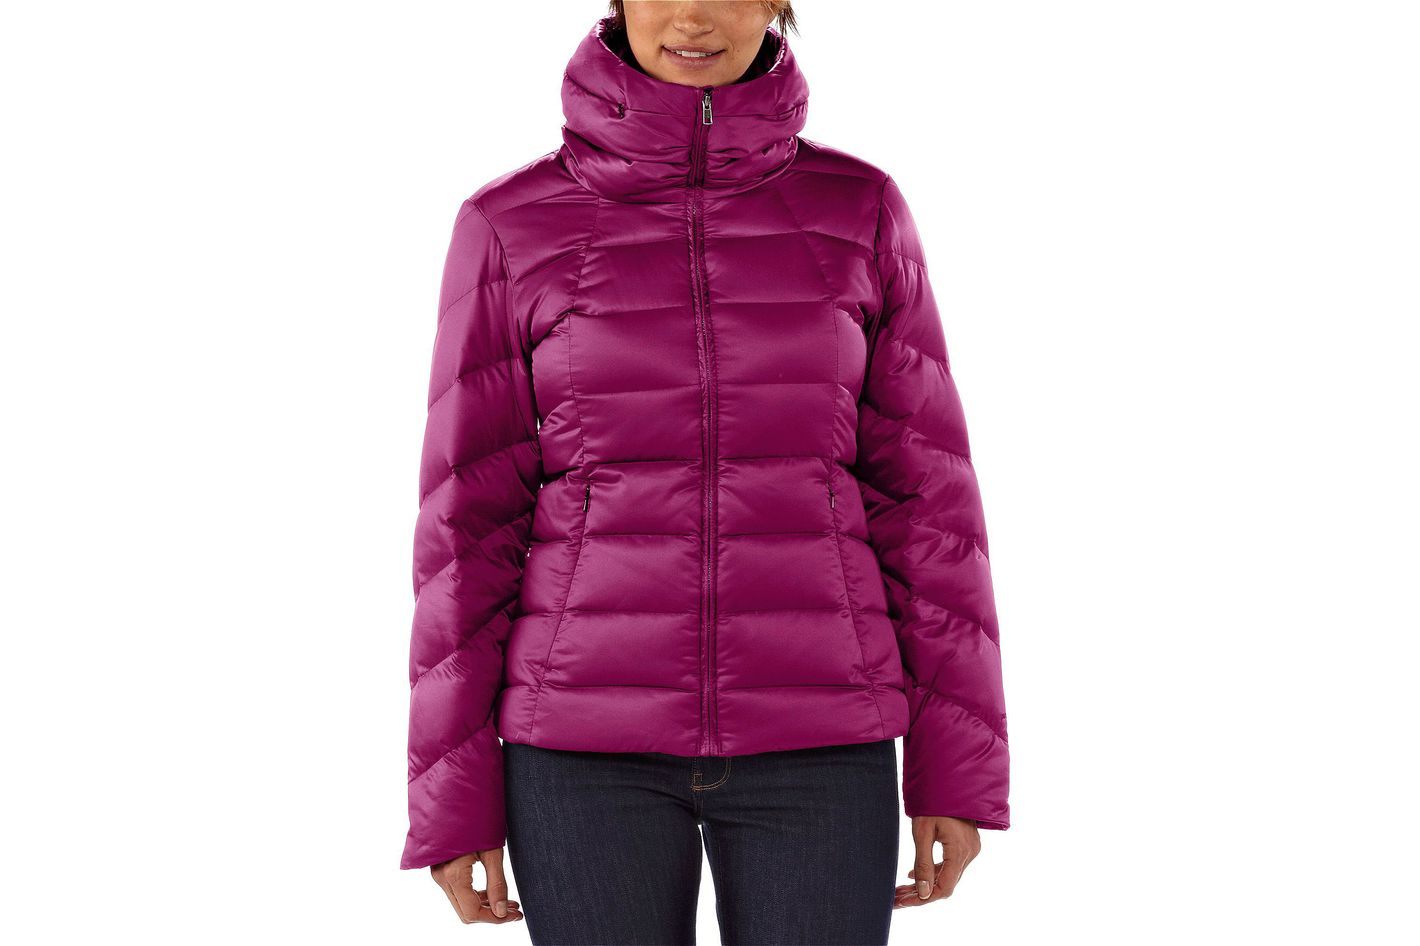 Best Clothing For College Students Patagonia Womens Downtown Jacket